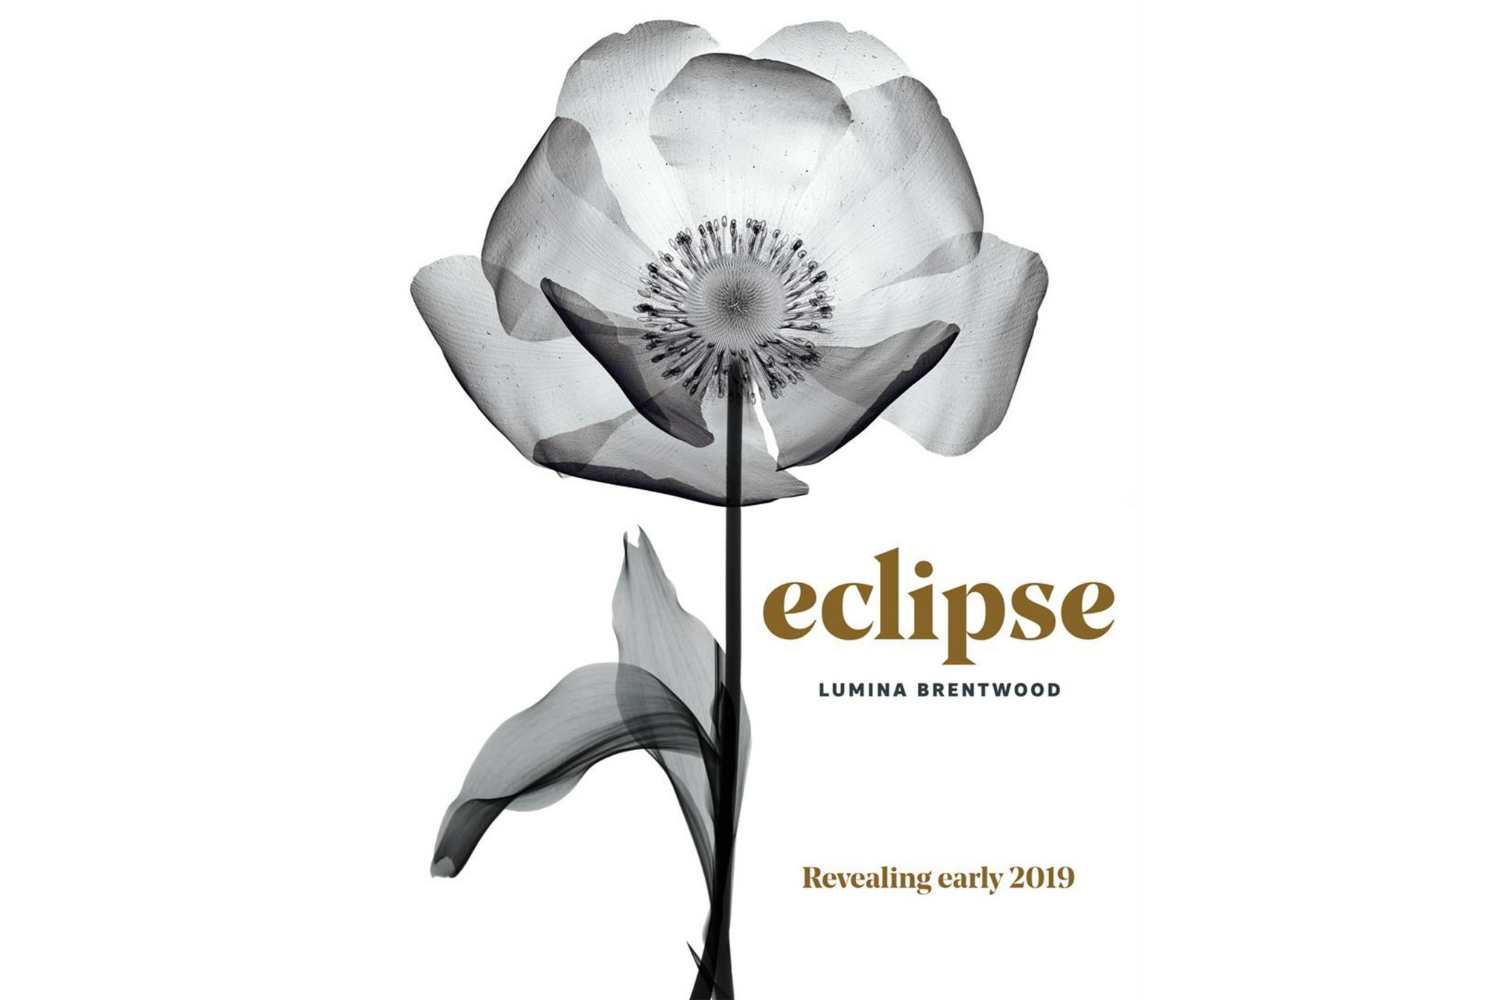 Eclipse at Lumina Brentwood Burnaby Centre Condo Presale 2019 Logo